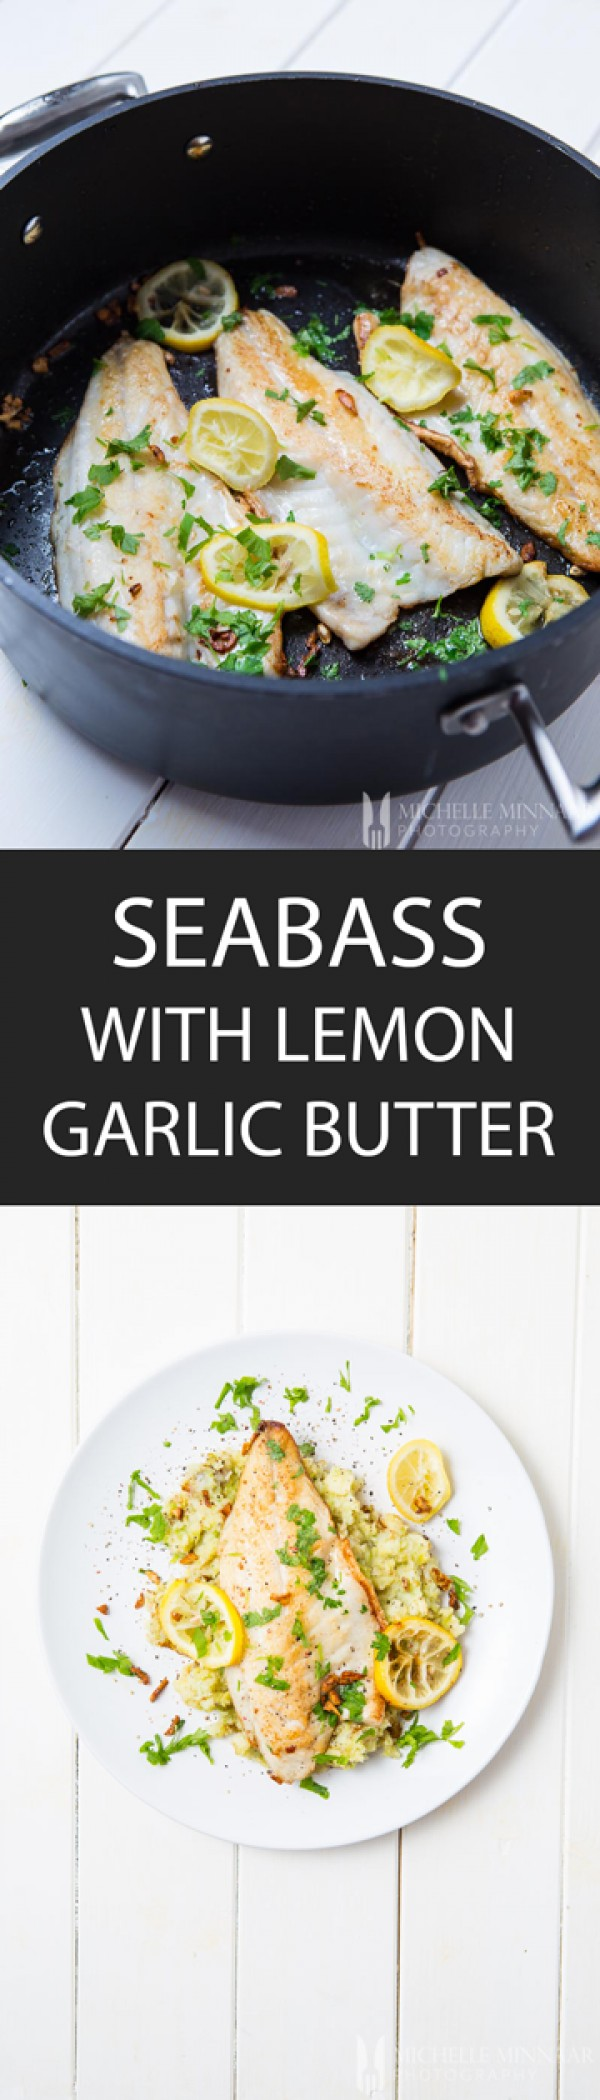 Check out this recipe for seabass with lemon garlic butter. Yummy! #RecipeIdeas @recipes_to_go